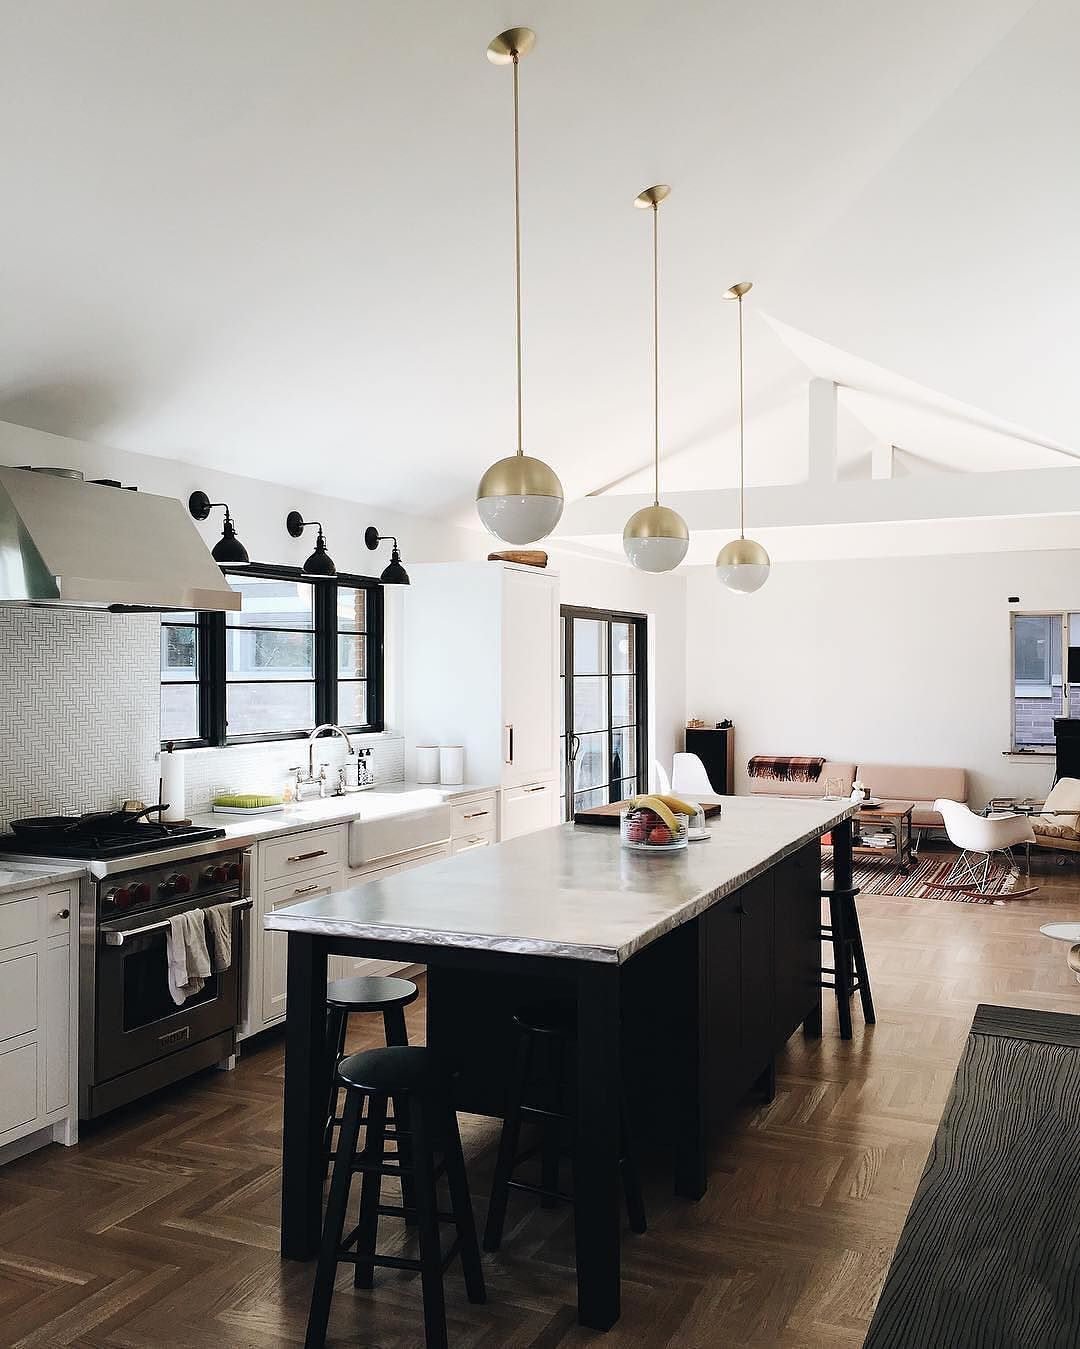 Create A Kitchen That S Cool Calm And Functional: This Bright View Of @maurastoffer's Kitchen In Chicago Is